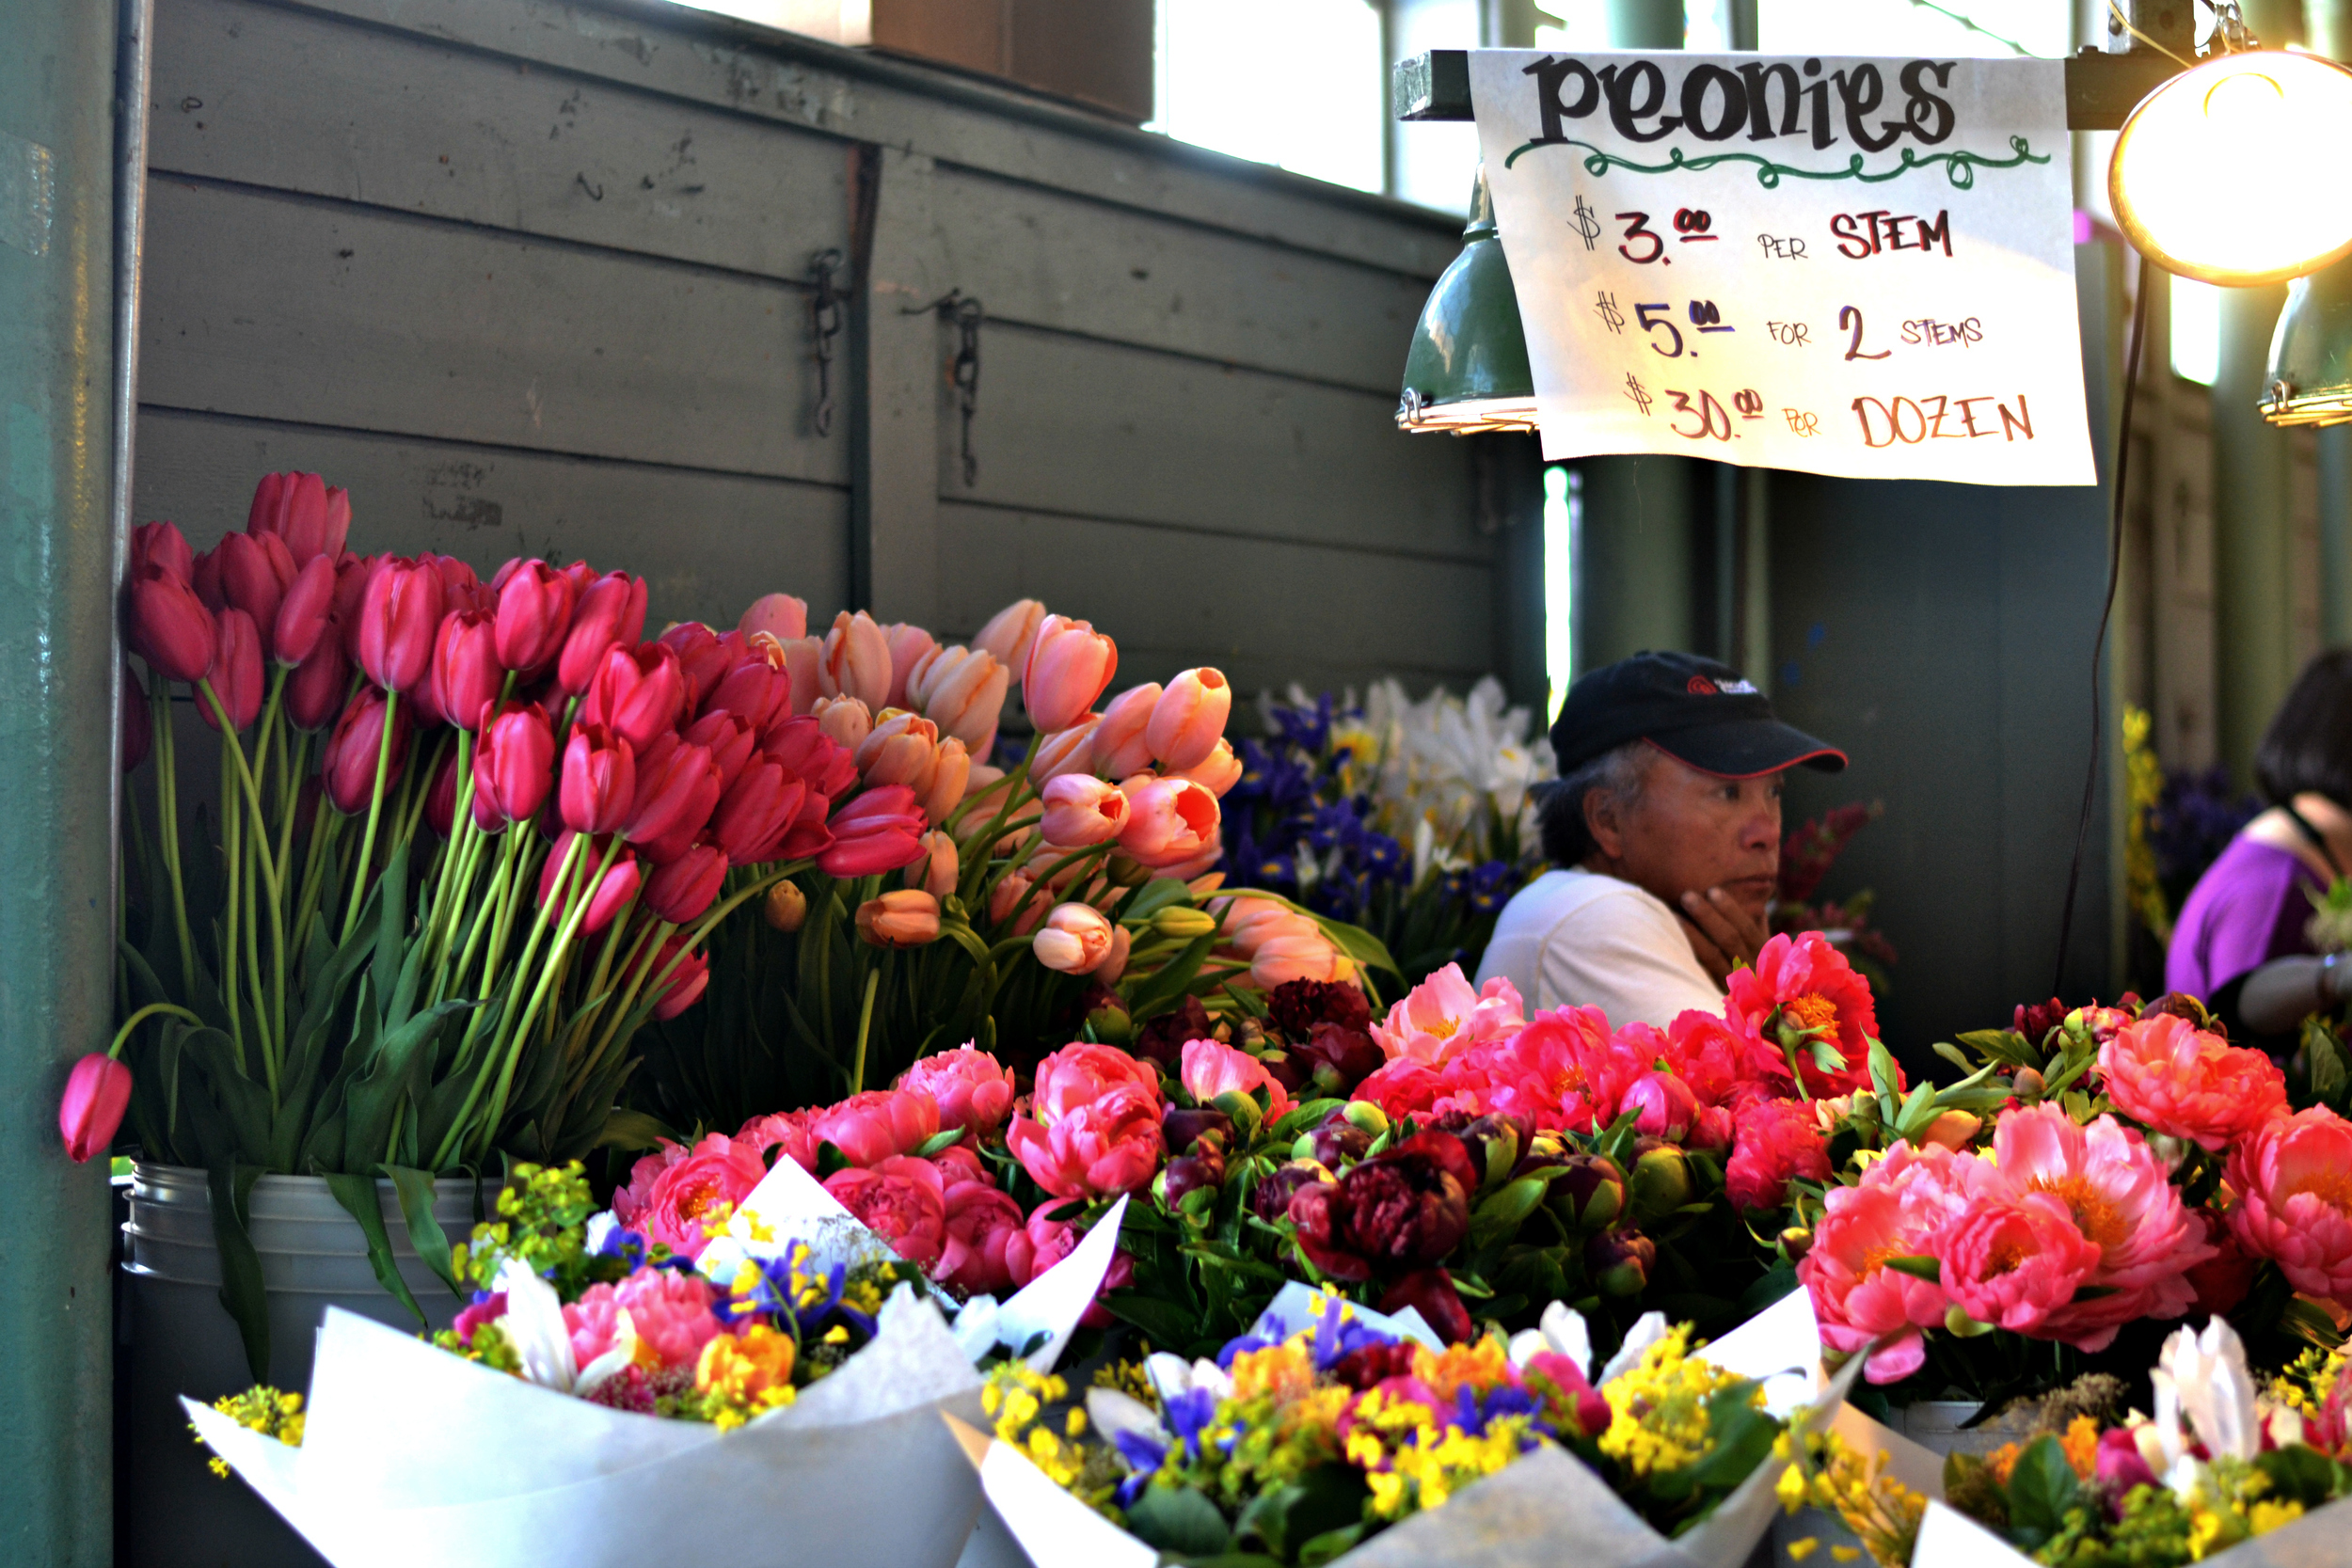 More Peonies + Tulips! Such great prices!